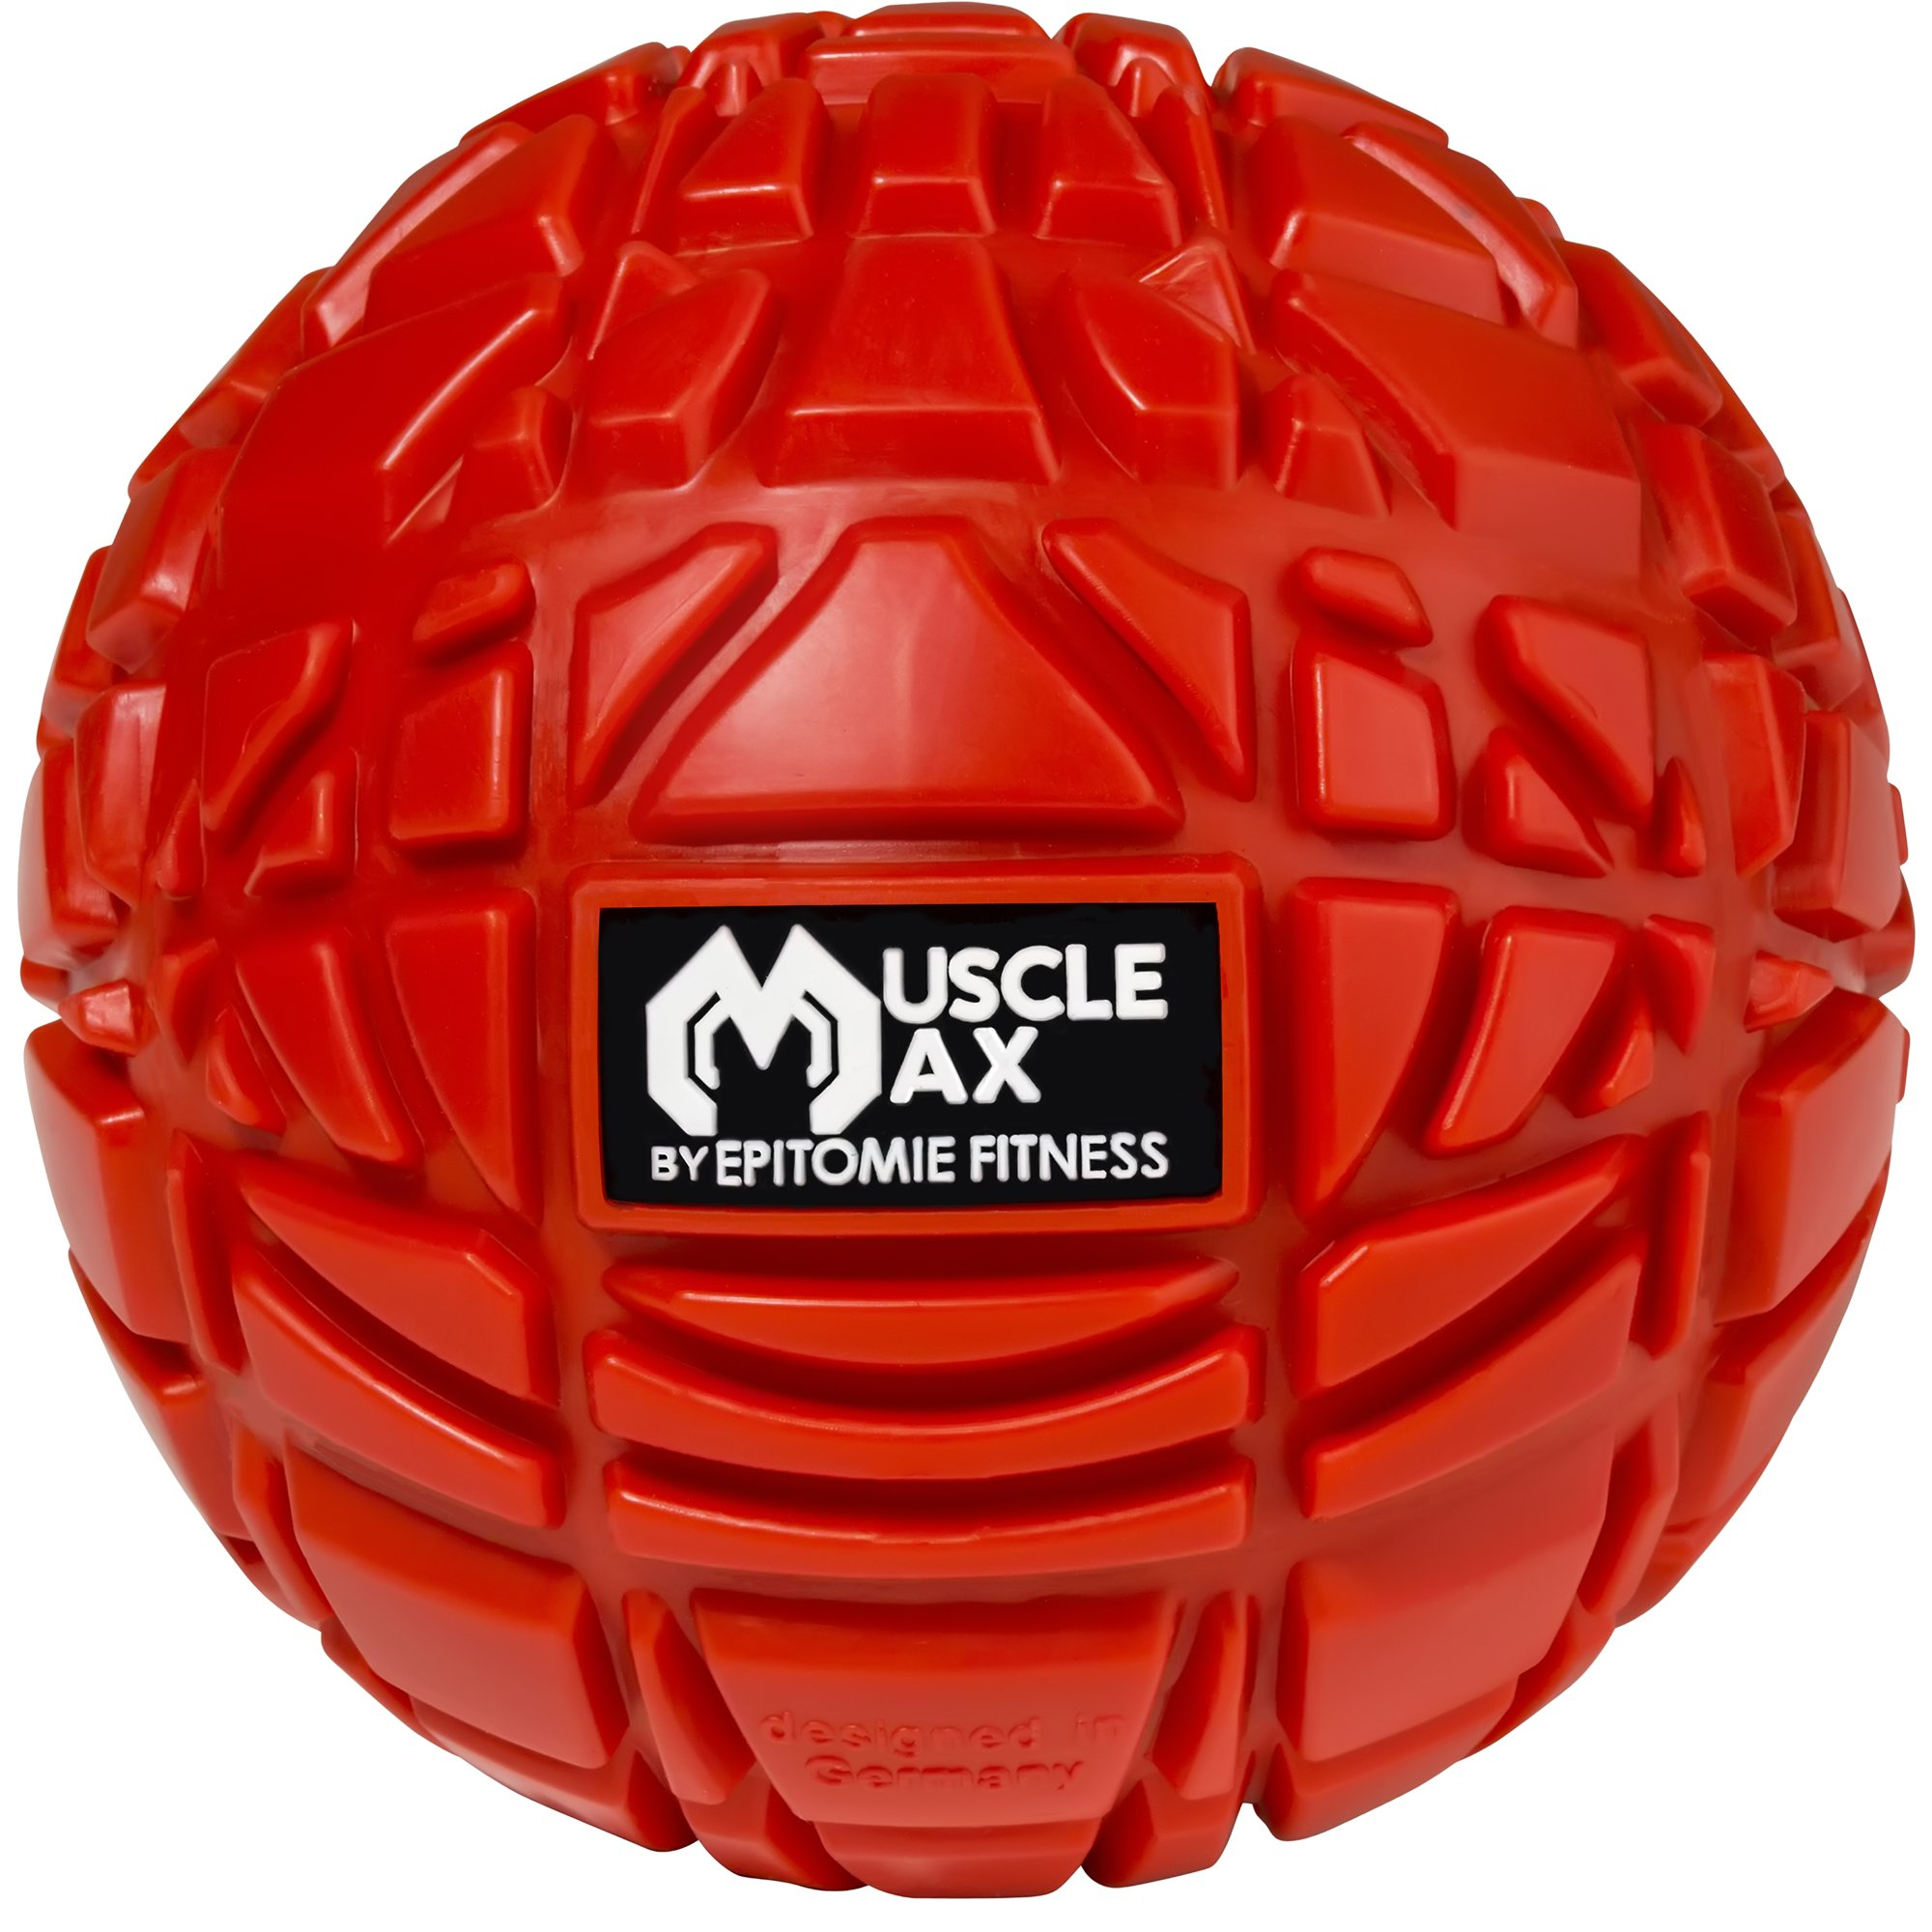 MuscMuscle Max Massage Ball - Therapy Ball For Trigger Point Massage | Deep Tle Max Massage Ball - Deep Tissue Massager For Trigger Point, Myofascial Release & Self Massage Comes With Travel Bag - Red